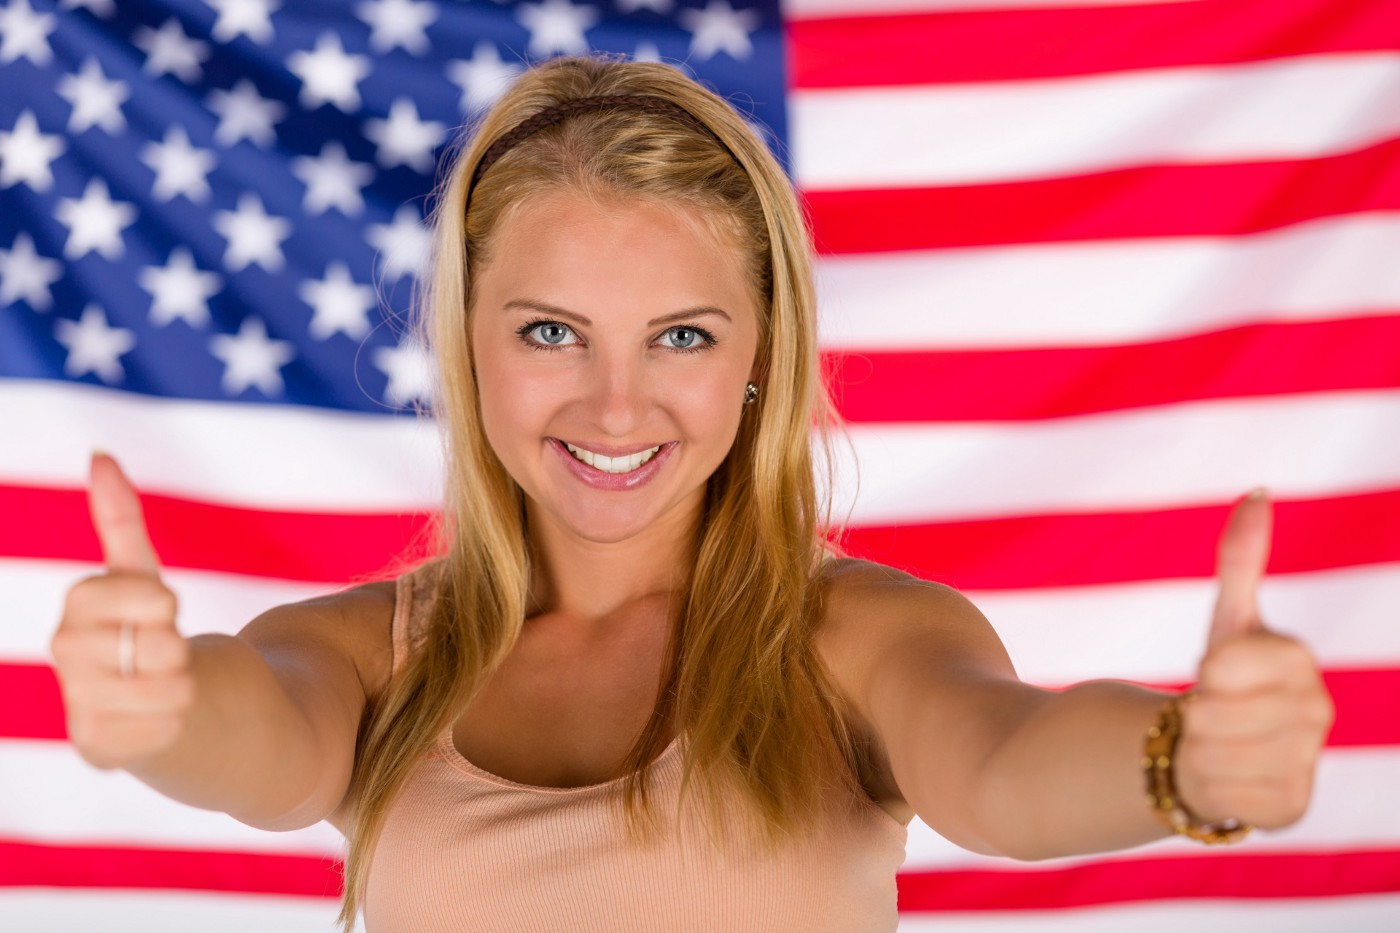 A smiling blonde-haired, blue-eyed white woman gives us two thumbs us while standing in front of an American flag.